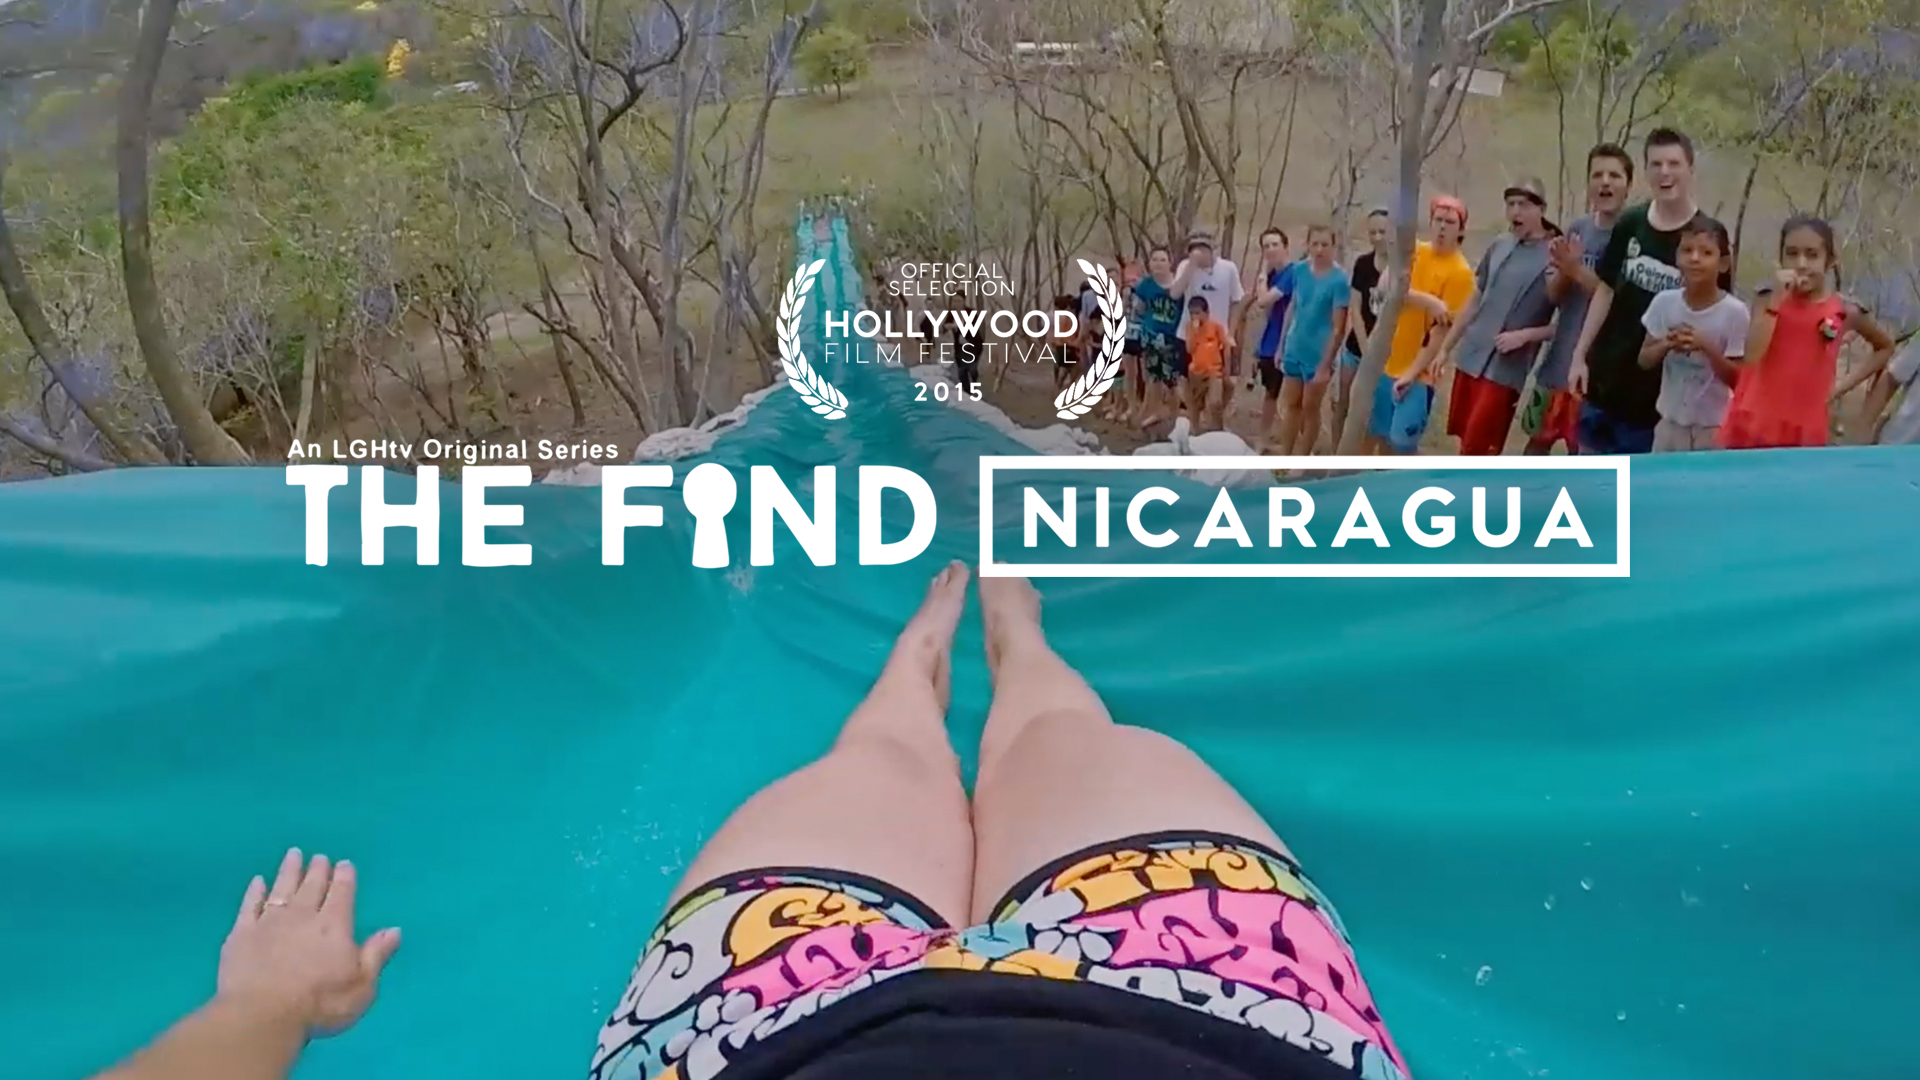 The Language of Kids - A young man from the US, Brinson Buzbee, has created a place in the middle of Nicaragua where kids can simply be kids.